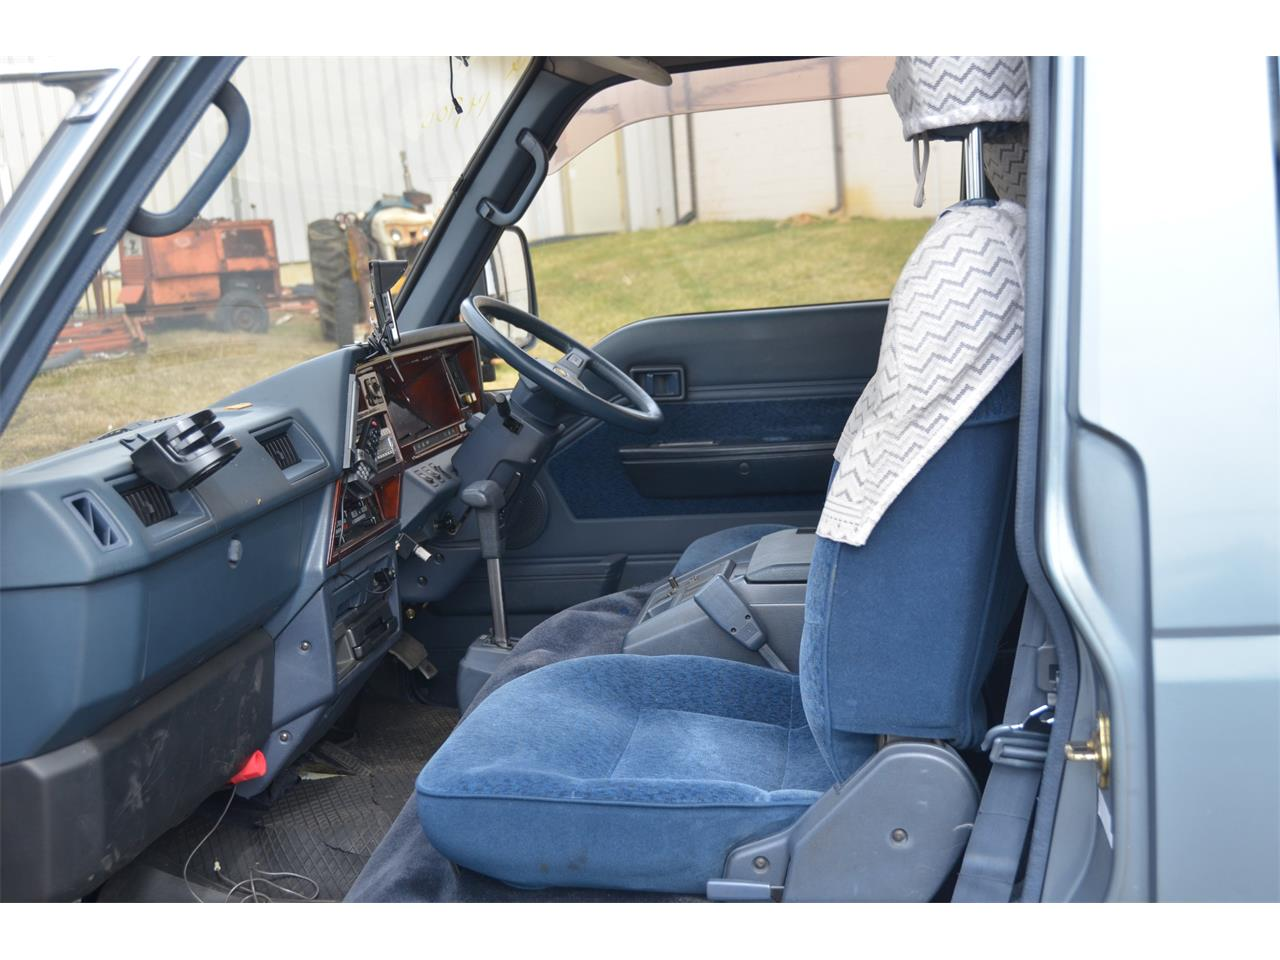 Large Picture of 1990 Nissan Caravan located in Christiansburg Virginia Offered by Duncan Imports & Classic Cars - LN58